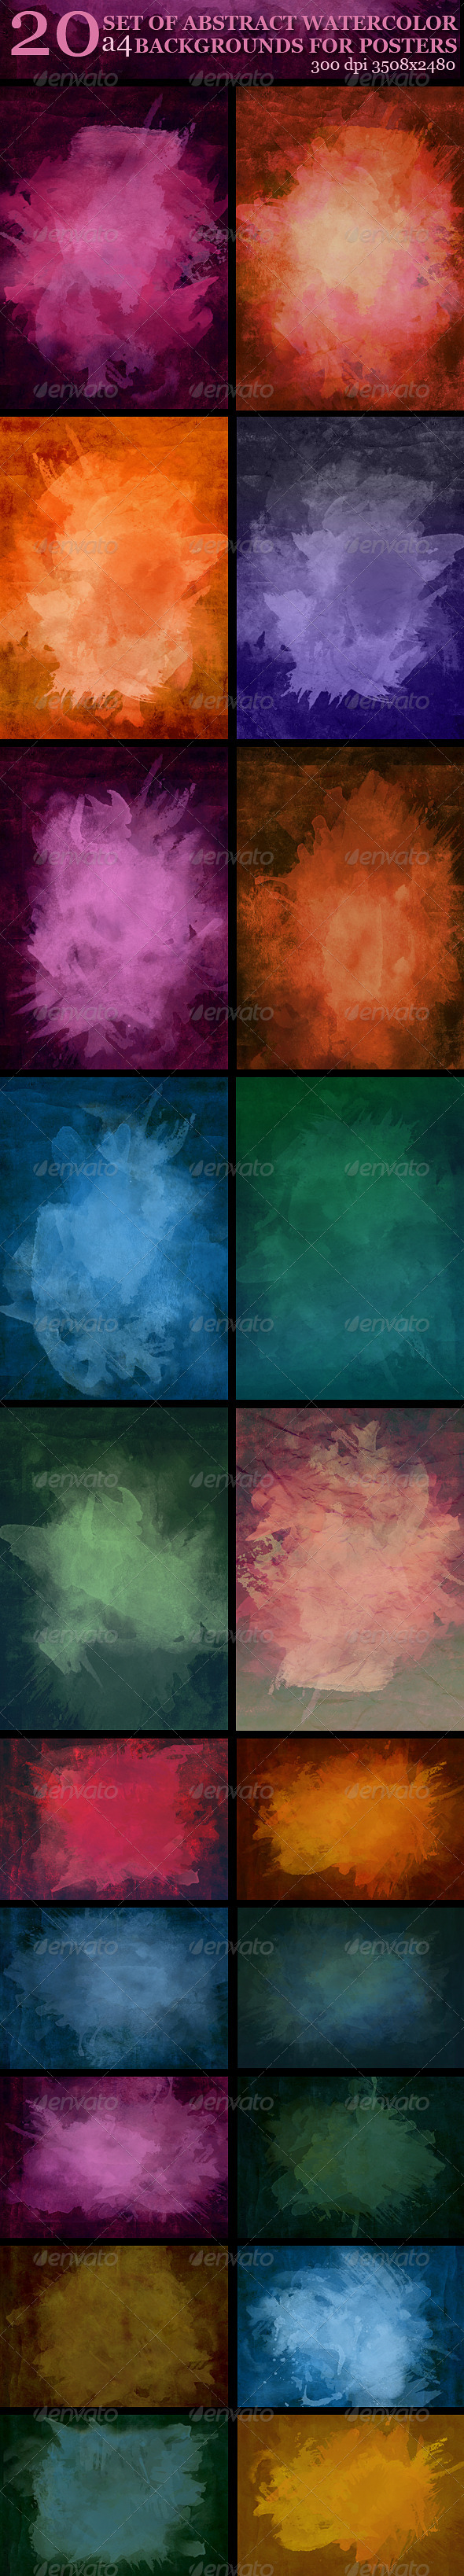 GraphicRiver Set of Abstract Watercolor Background for Posters 5028111